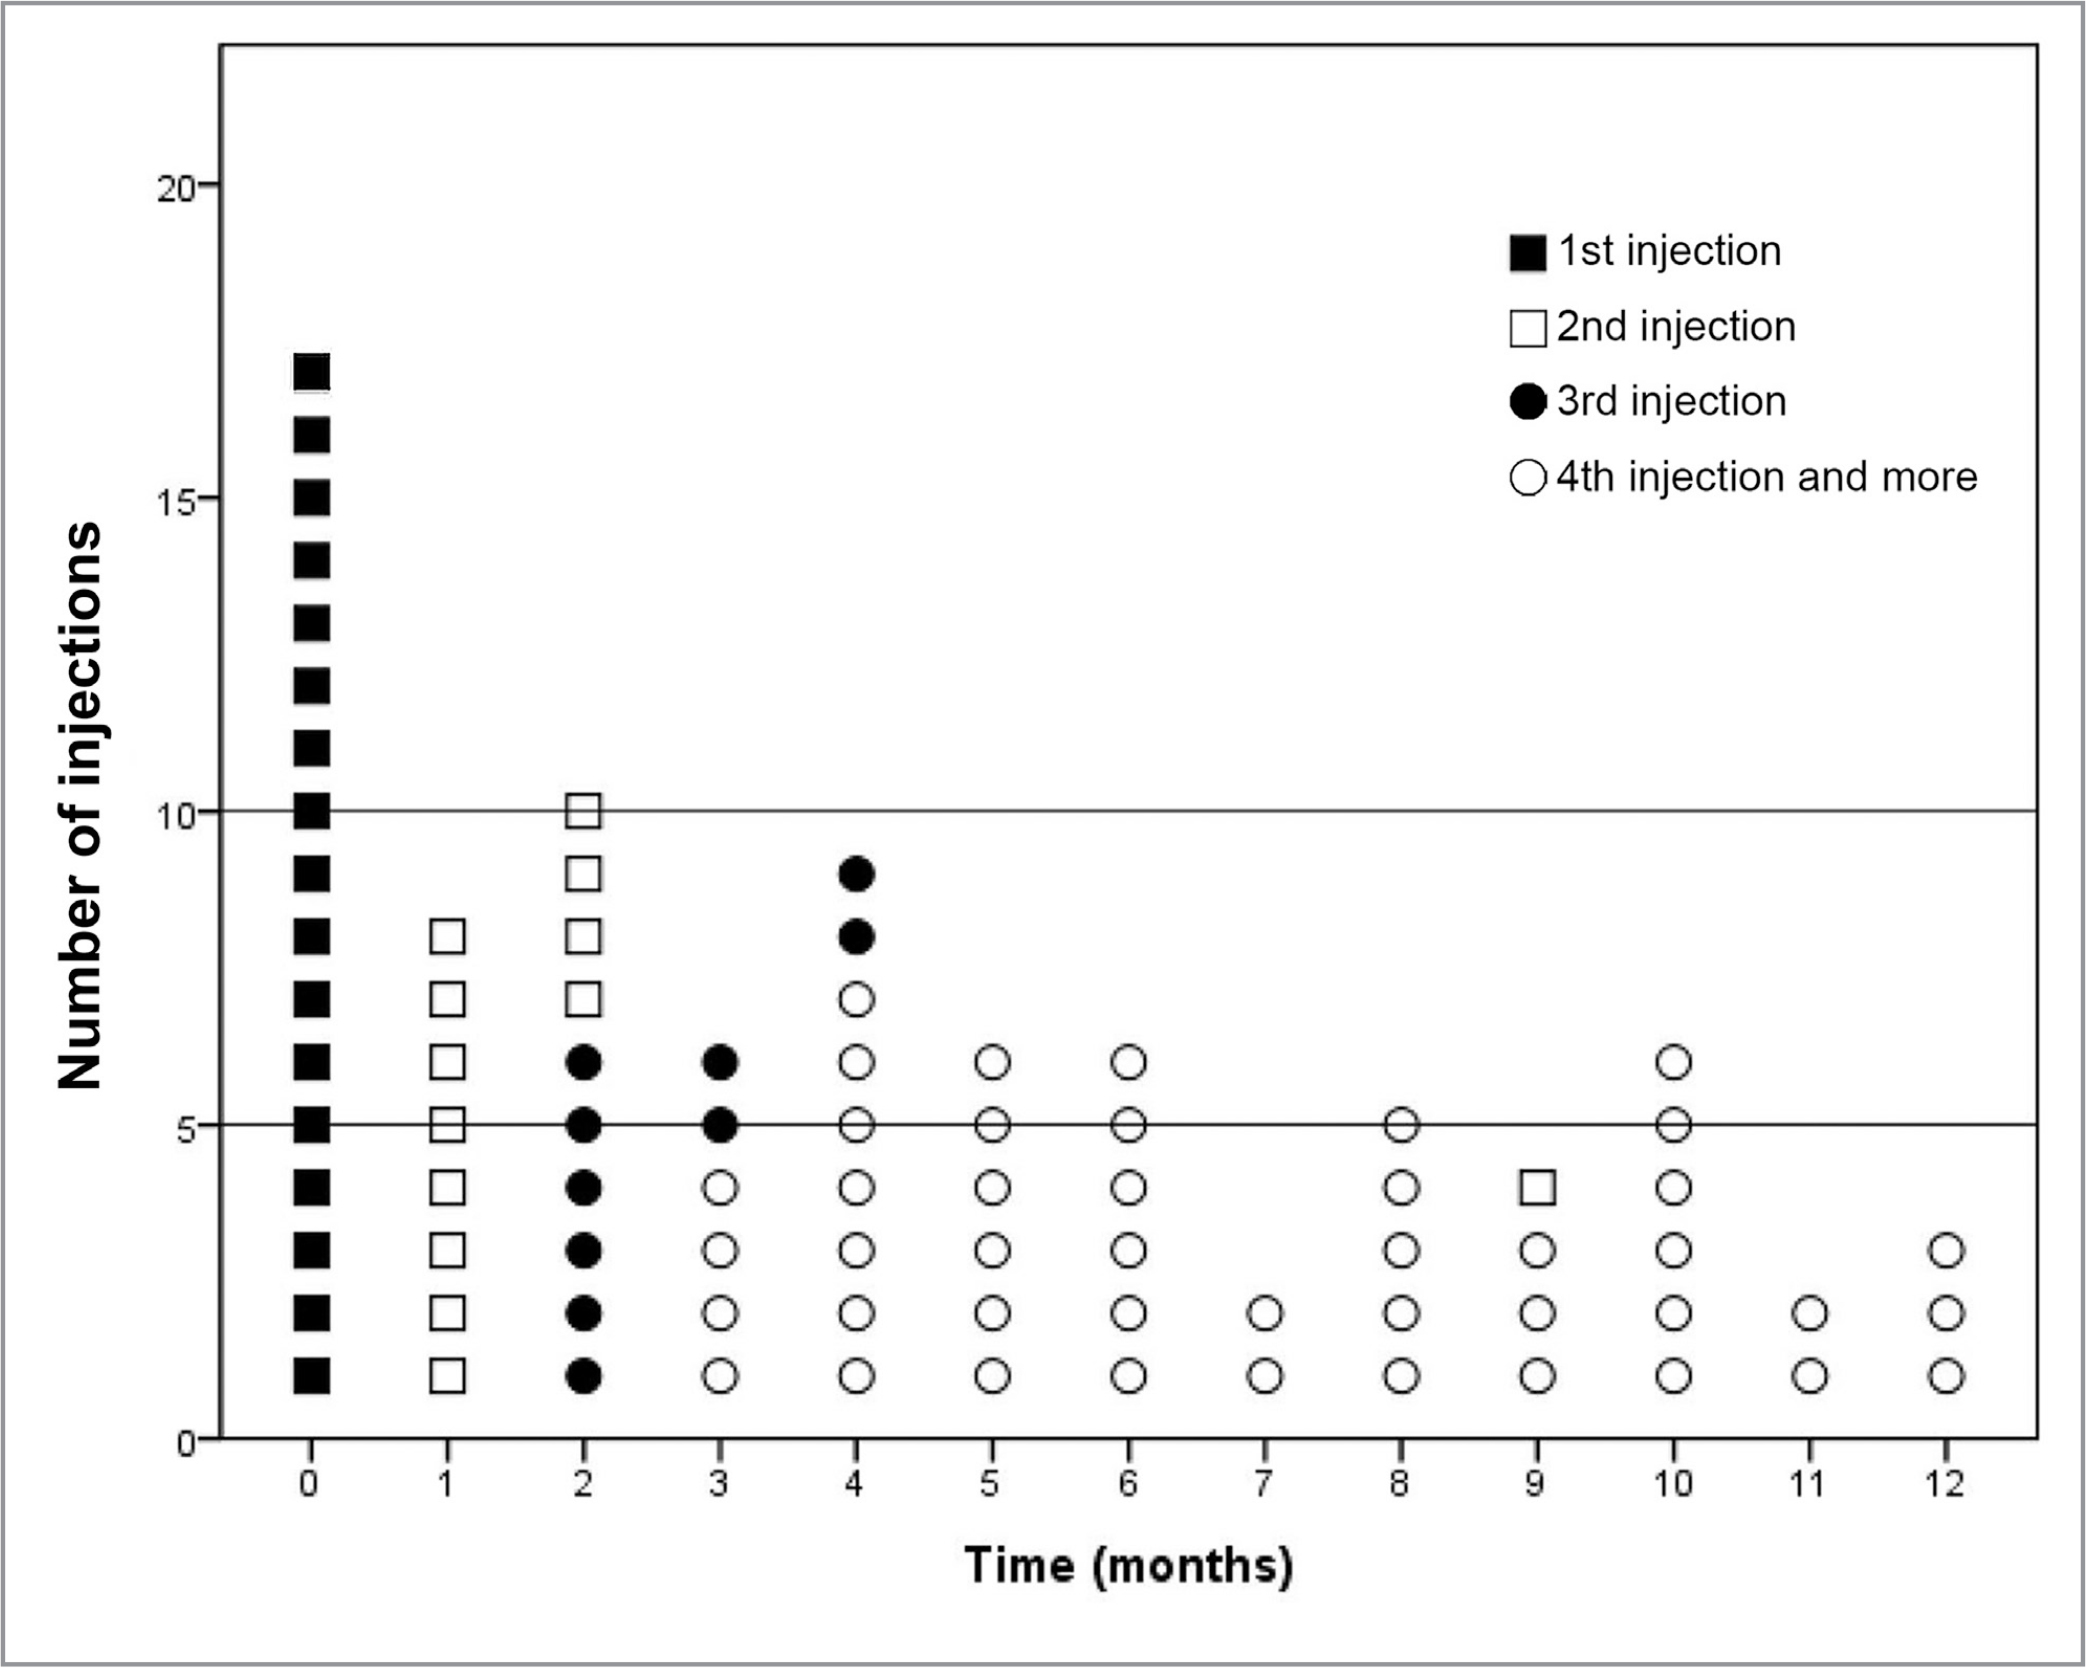 Number and duration of all injections in 12-months follow-up.